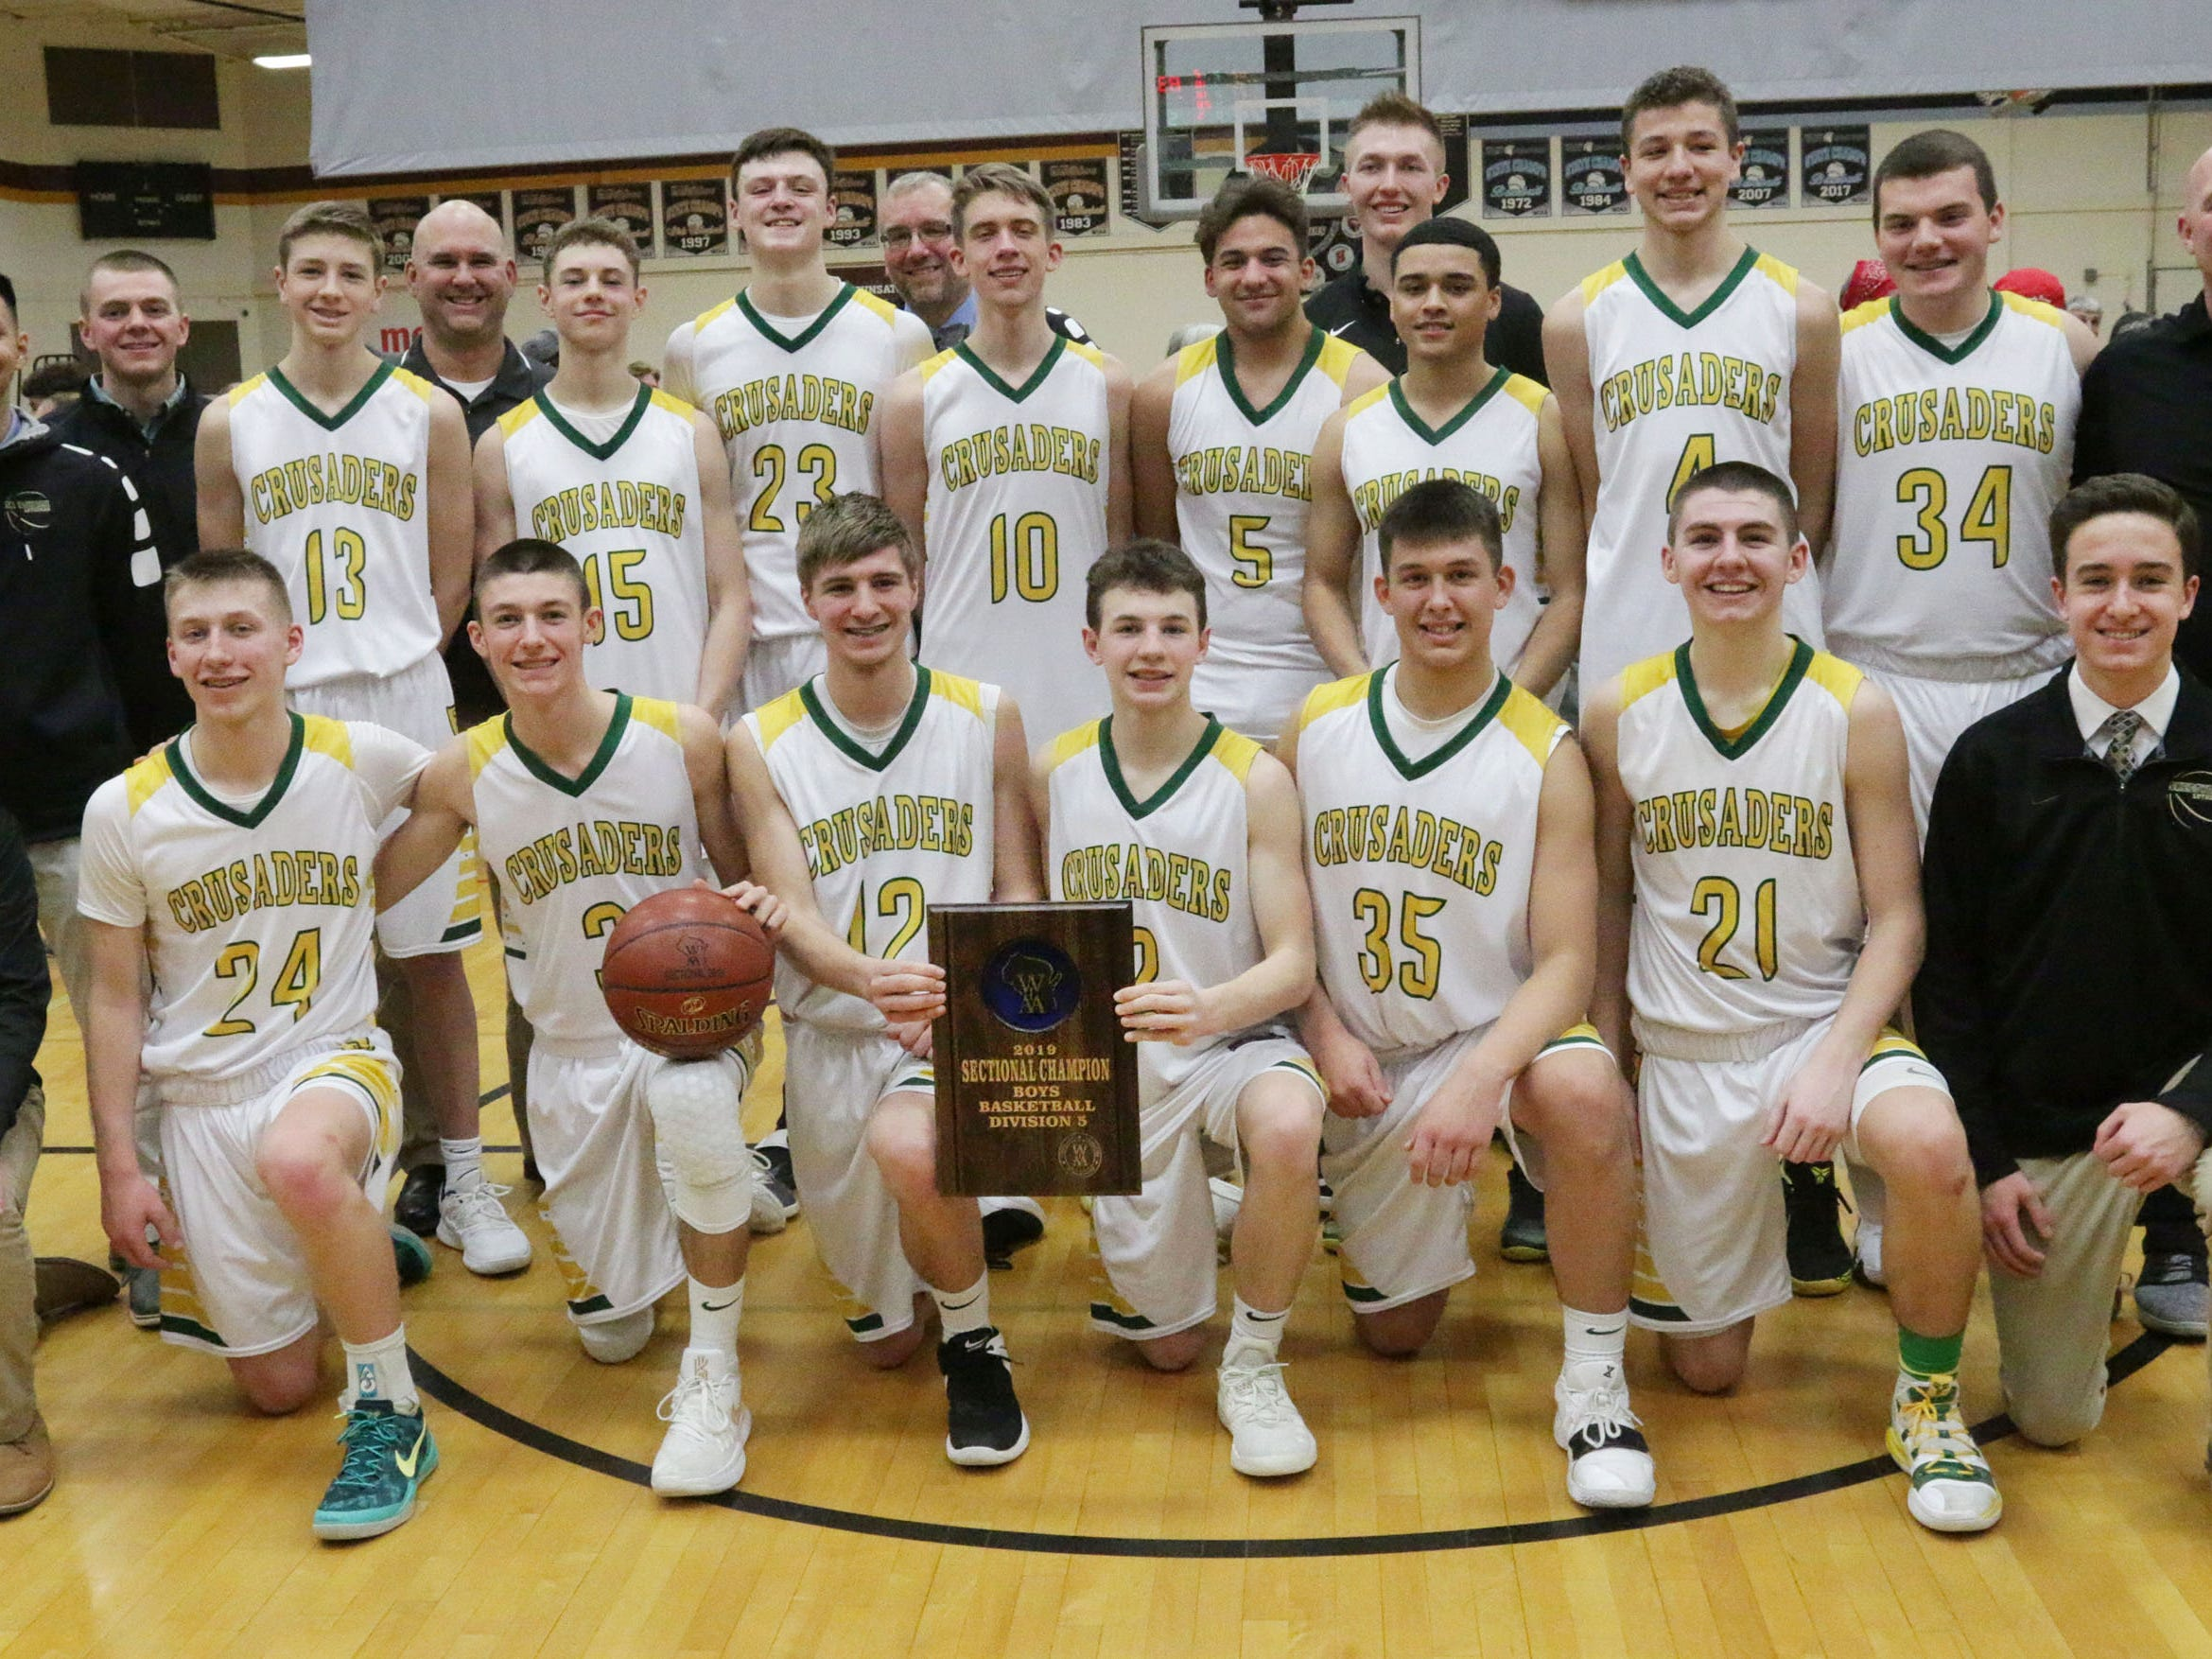 Sheboygan Lutheran's team poses after their 83-69 win over Rio in the WIAA Div. 5 sectional, Saturday, March 9, 2019, in Sheboygan, Wis.